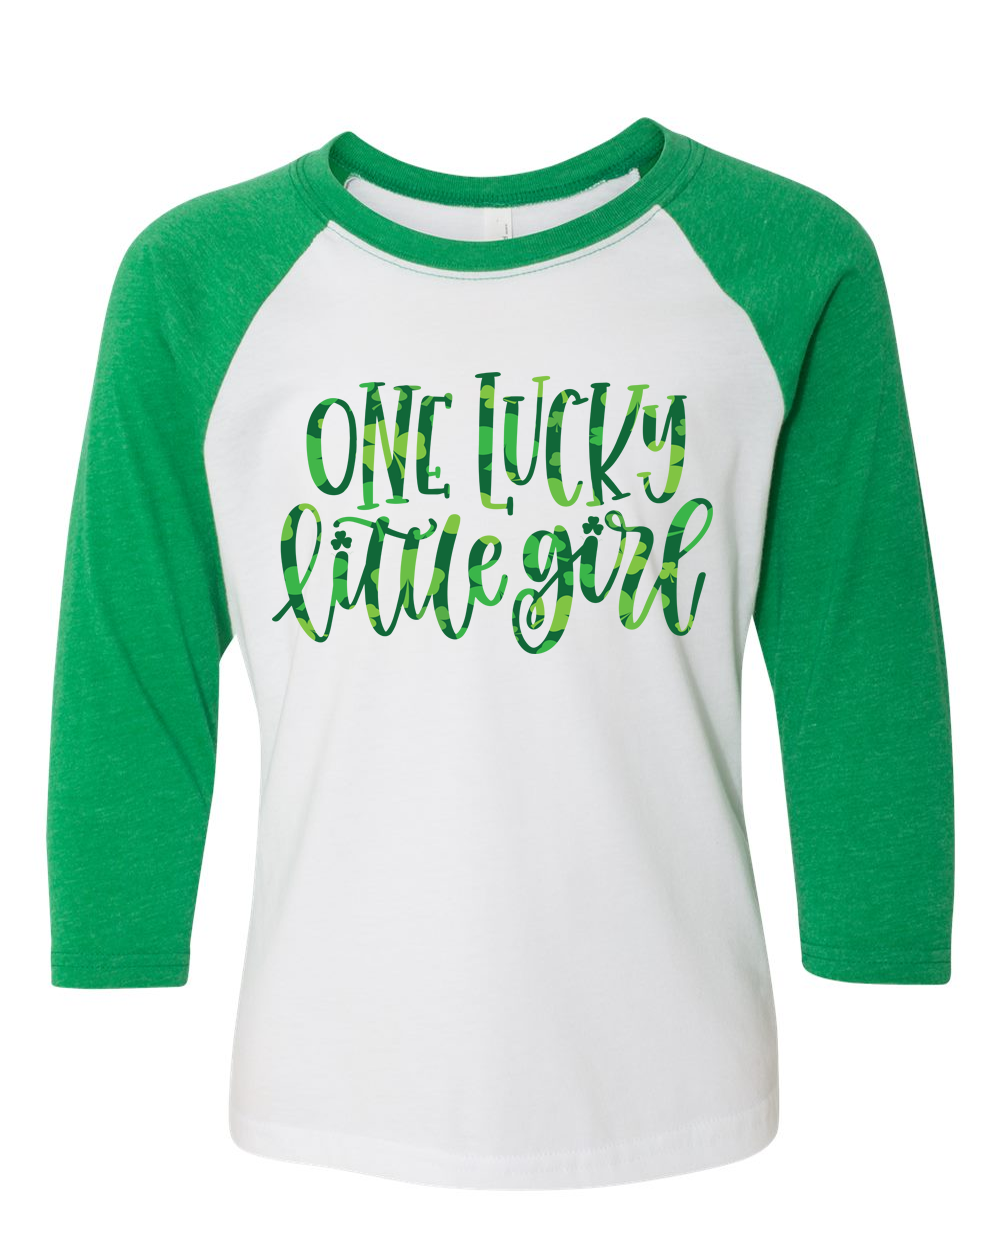 Lucky Little Girl 3/4 Sleeve Baseball Tee (Toddler and Youth)